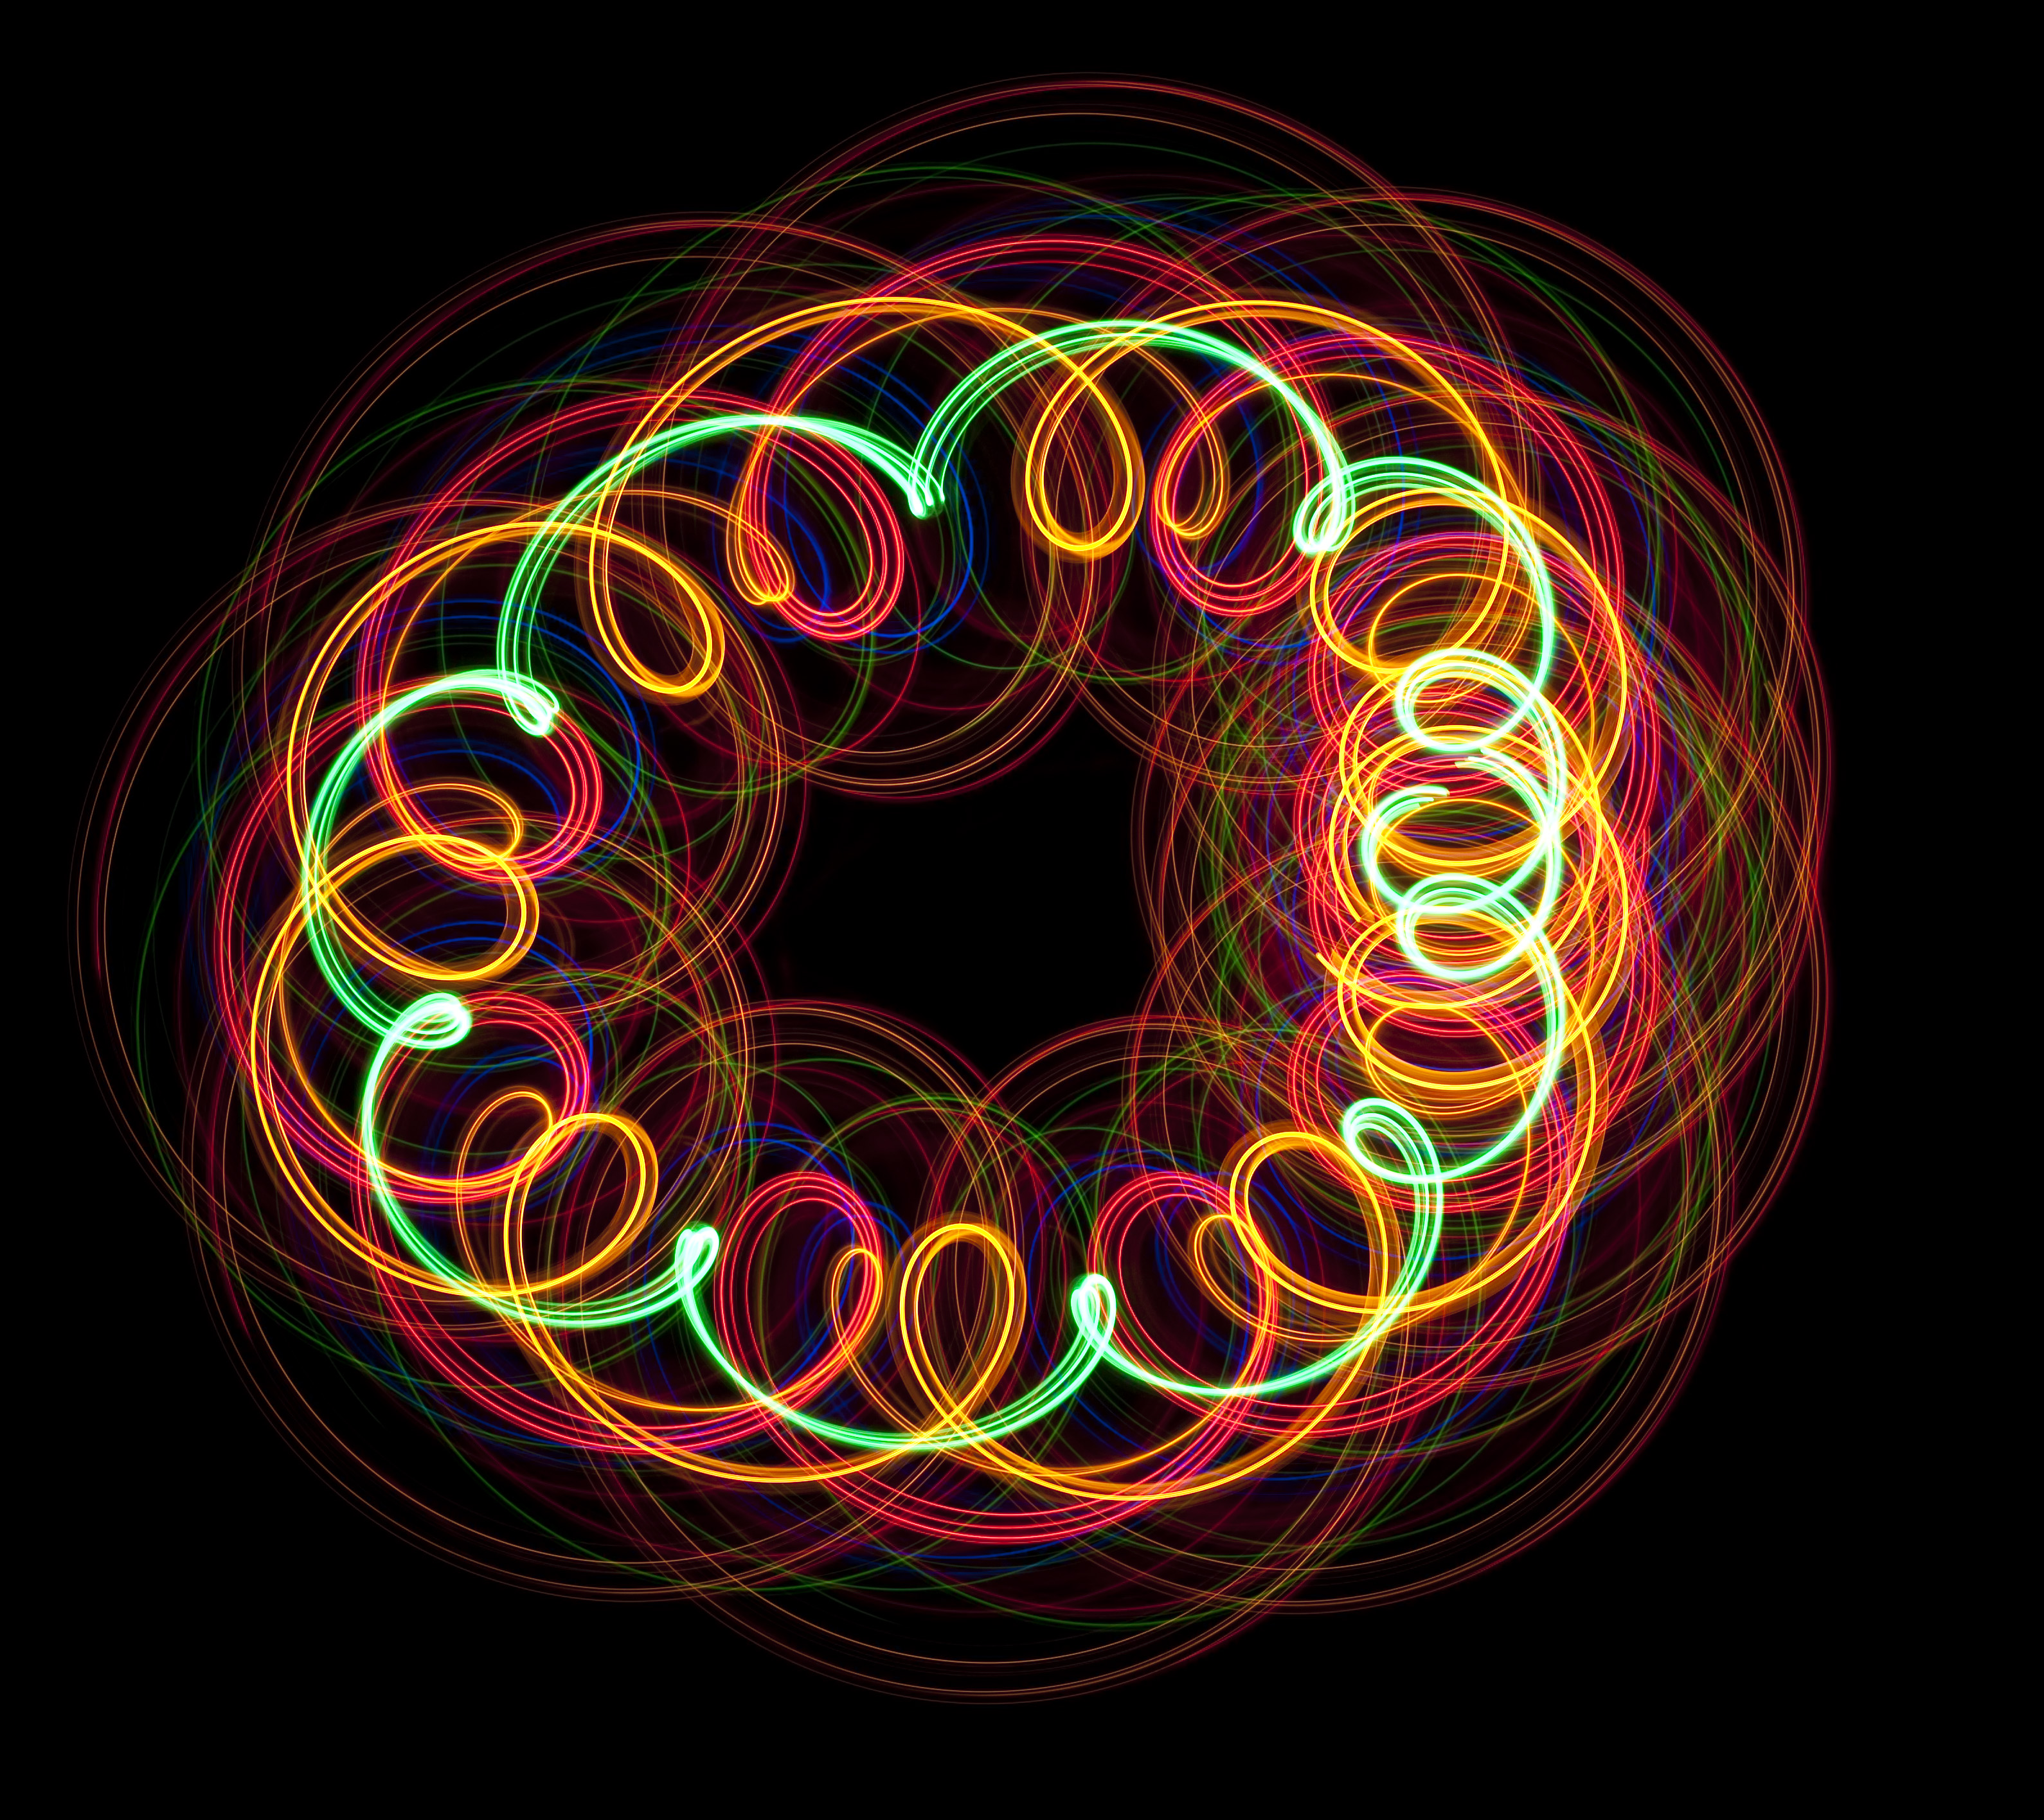 red green and orange lights spiraling round to form a circular pattern